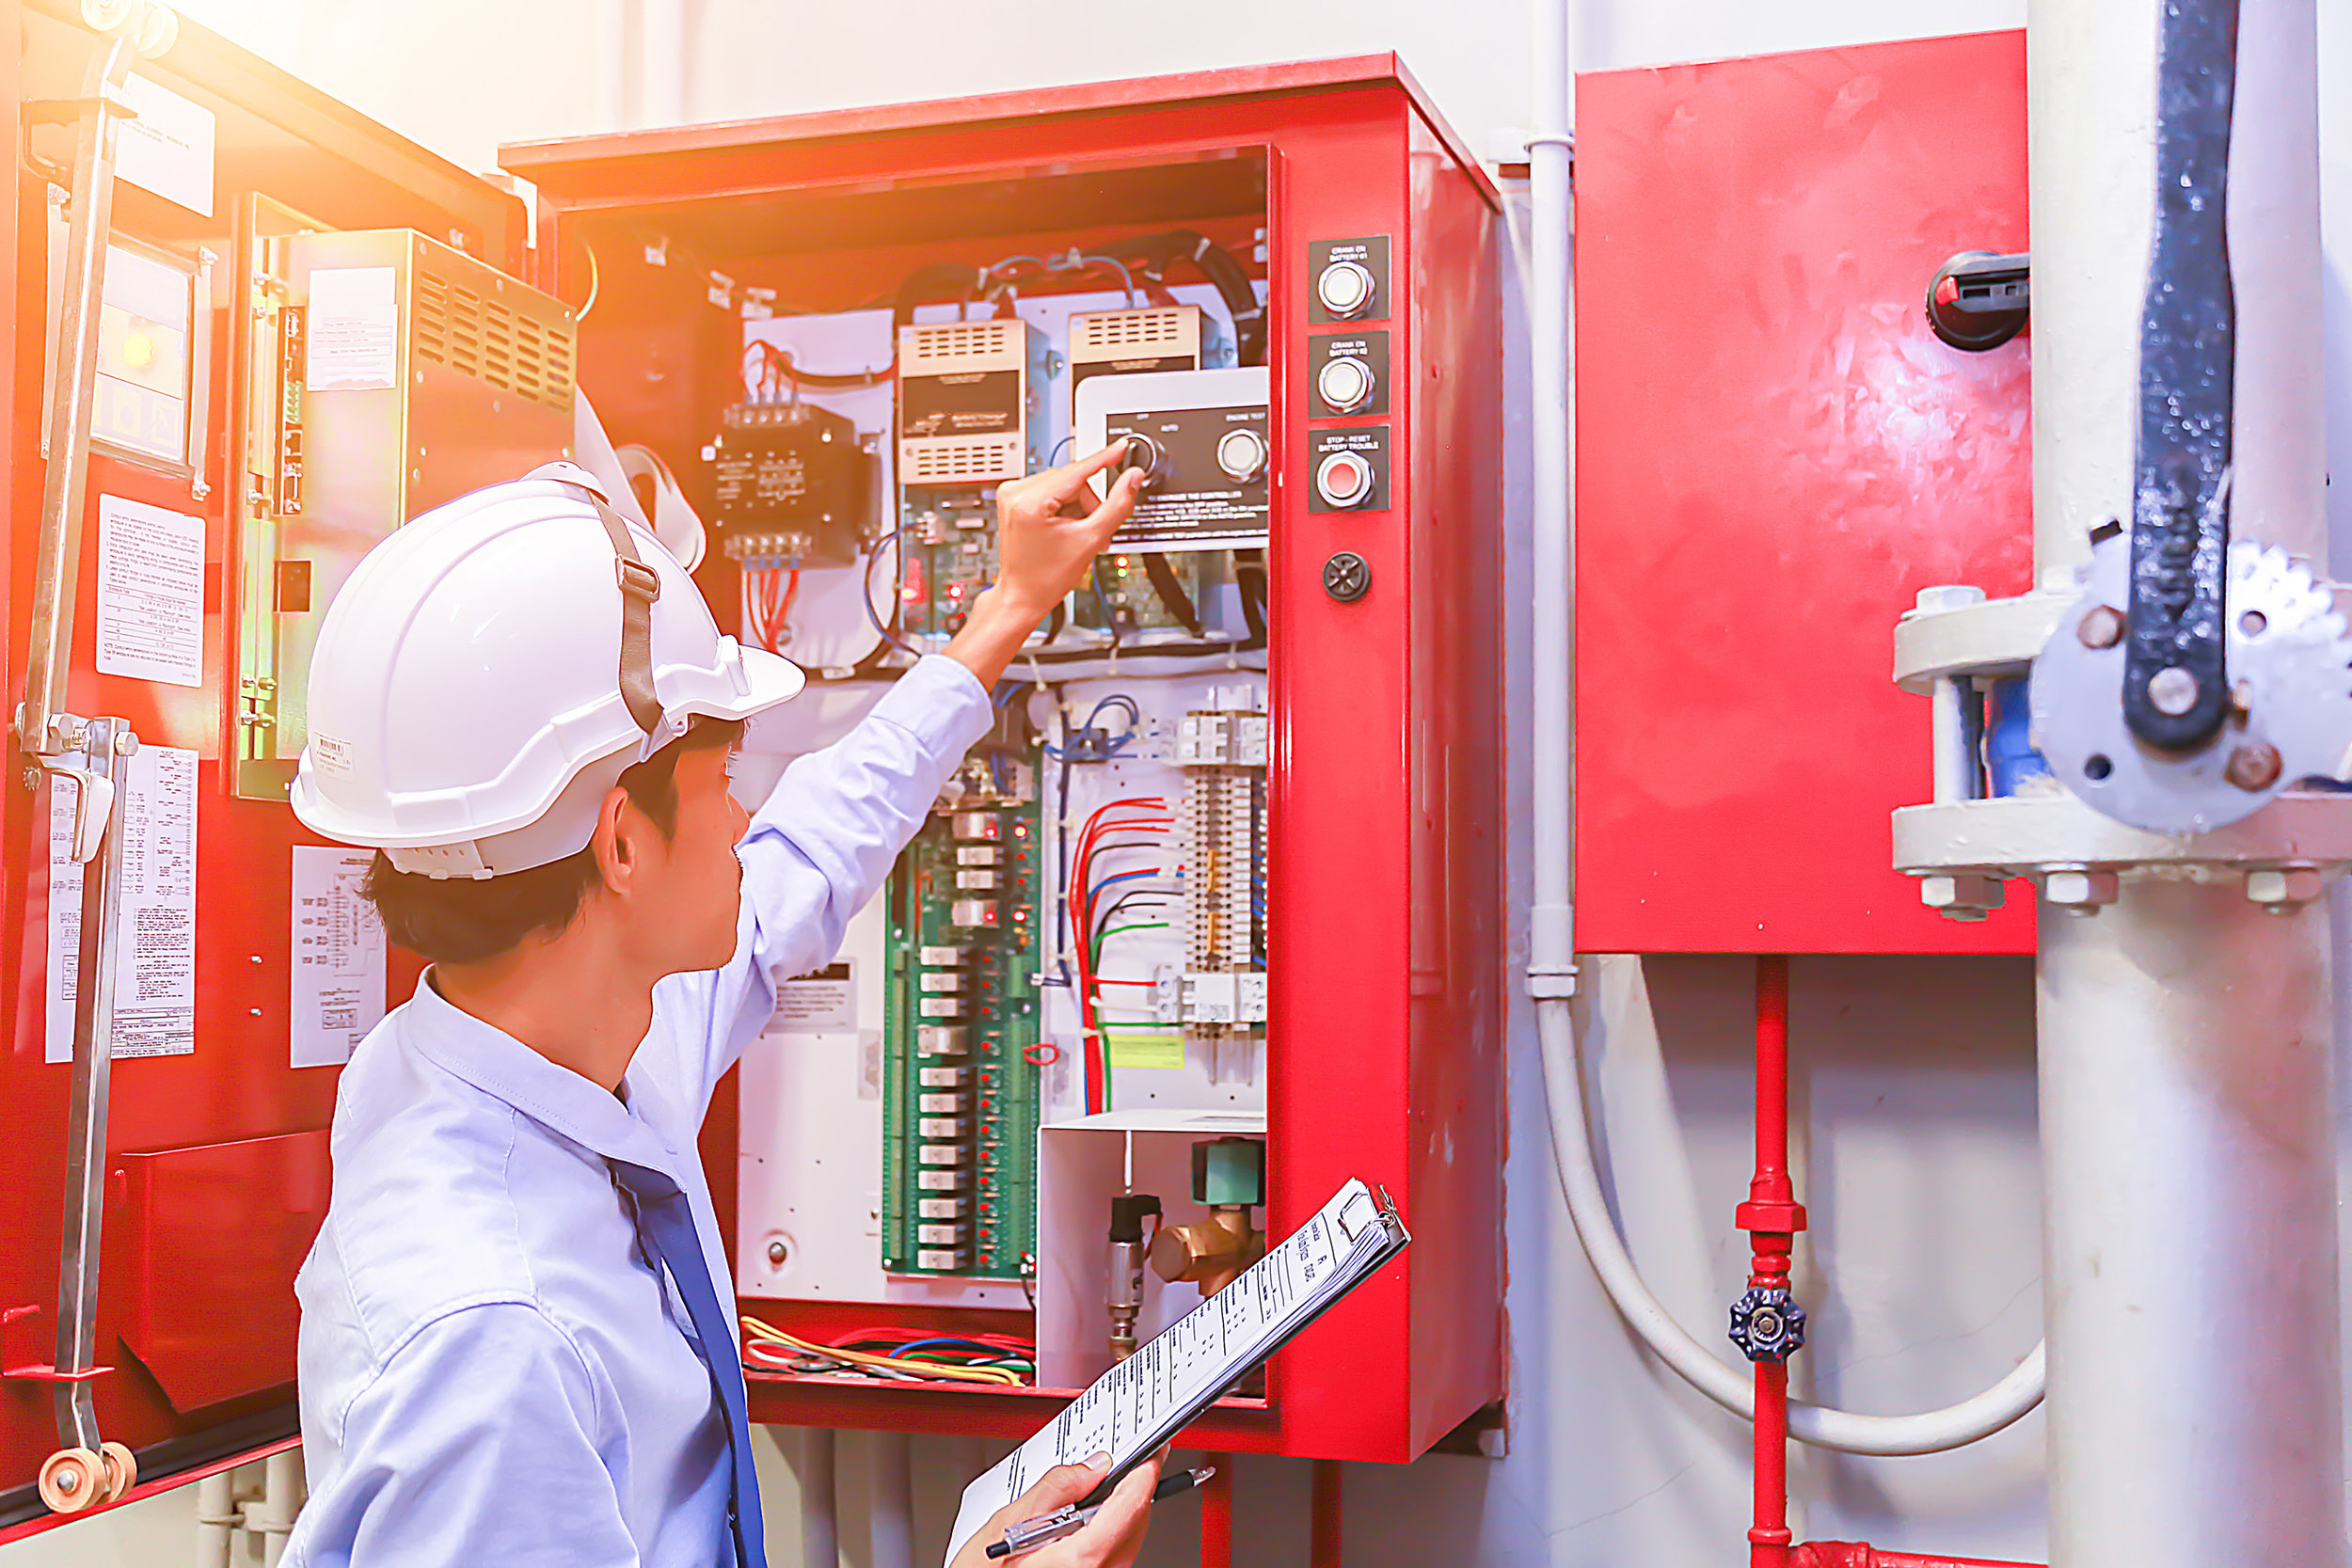 Systems Engineering - Our service technicians are on-call 24 hours a day to help you handle emergency service issues.